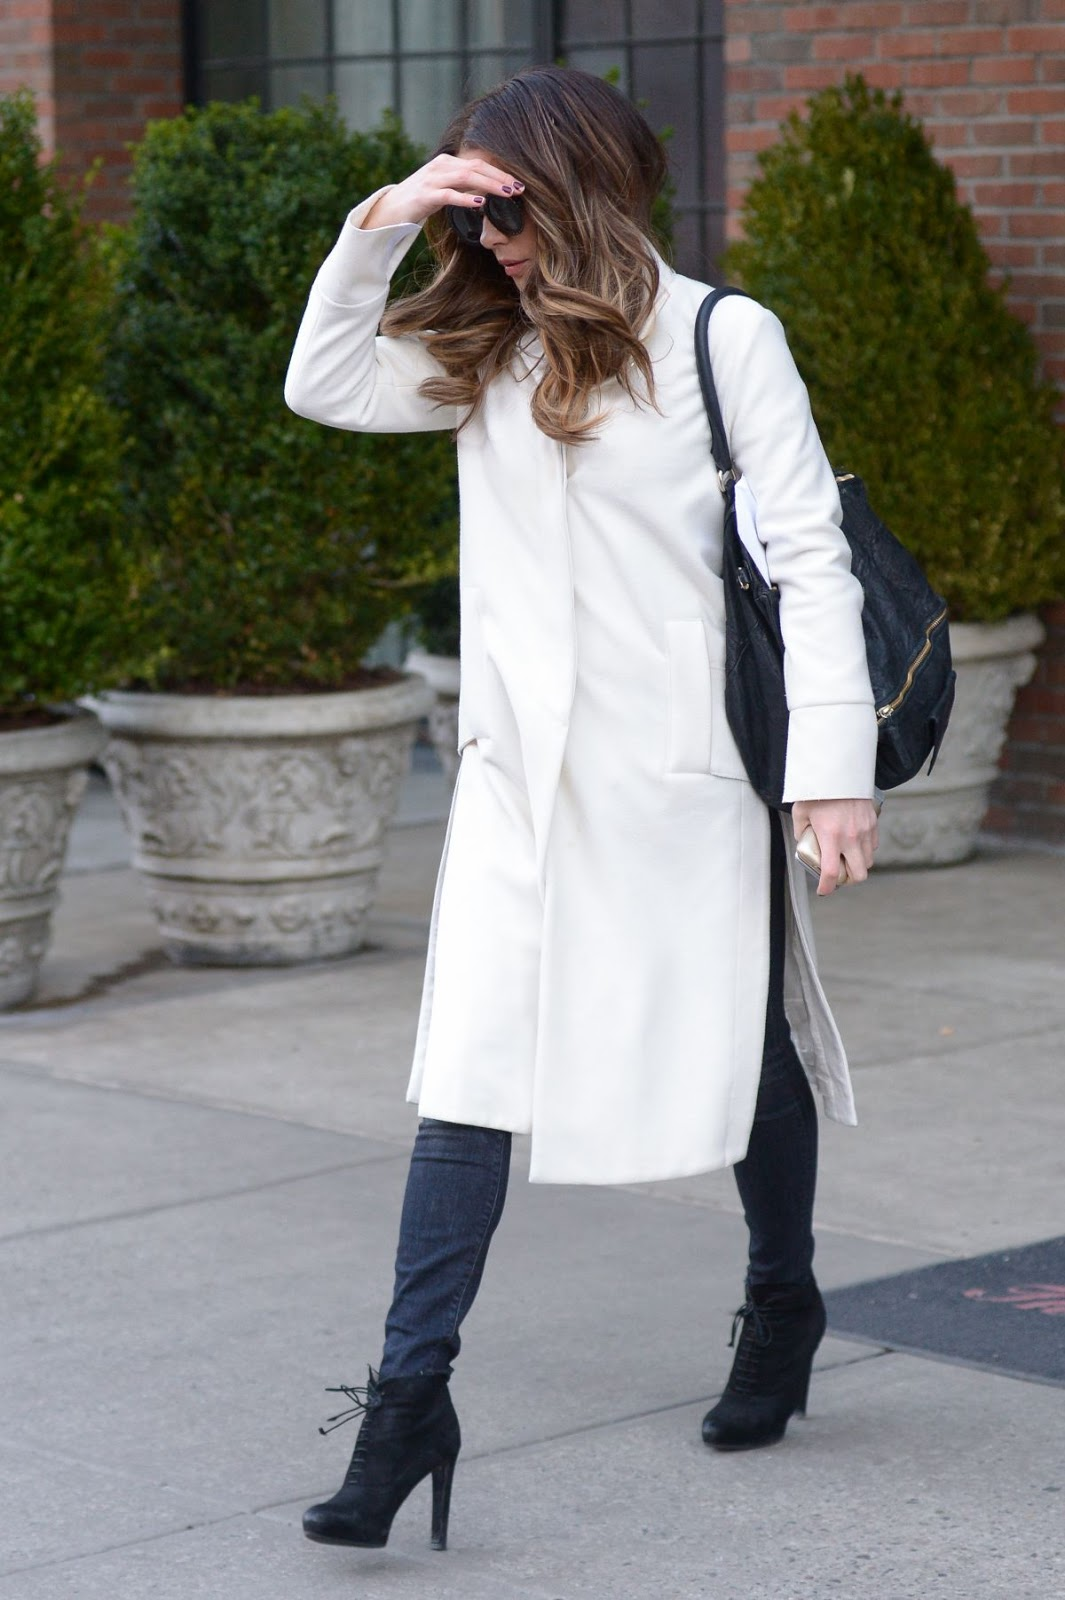 HQ Photos of Kate Beckinsale Out In New York City